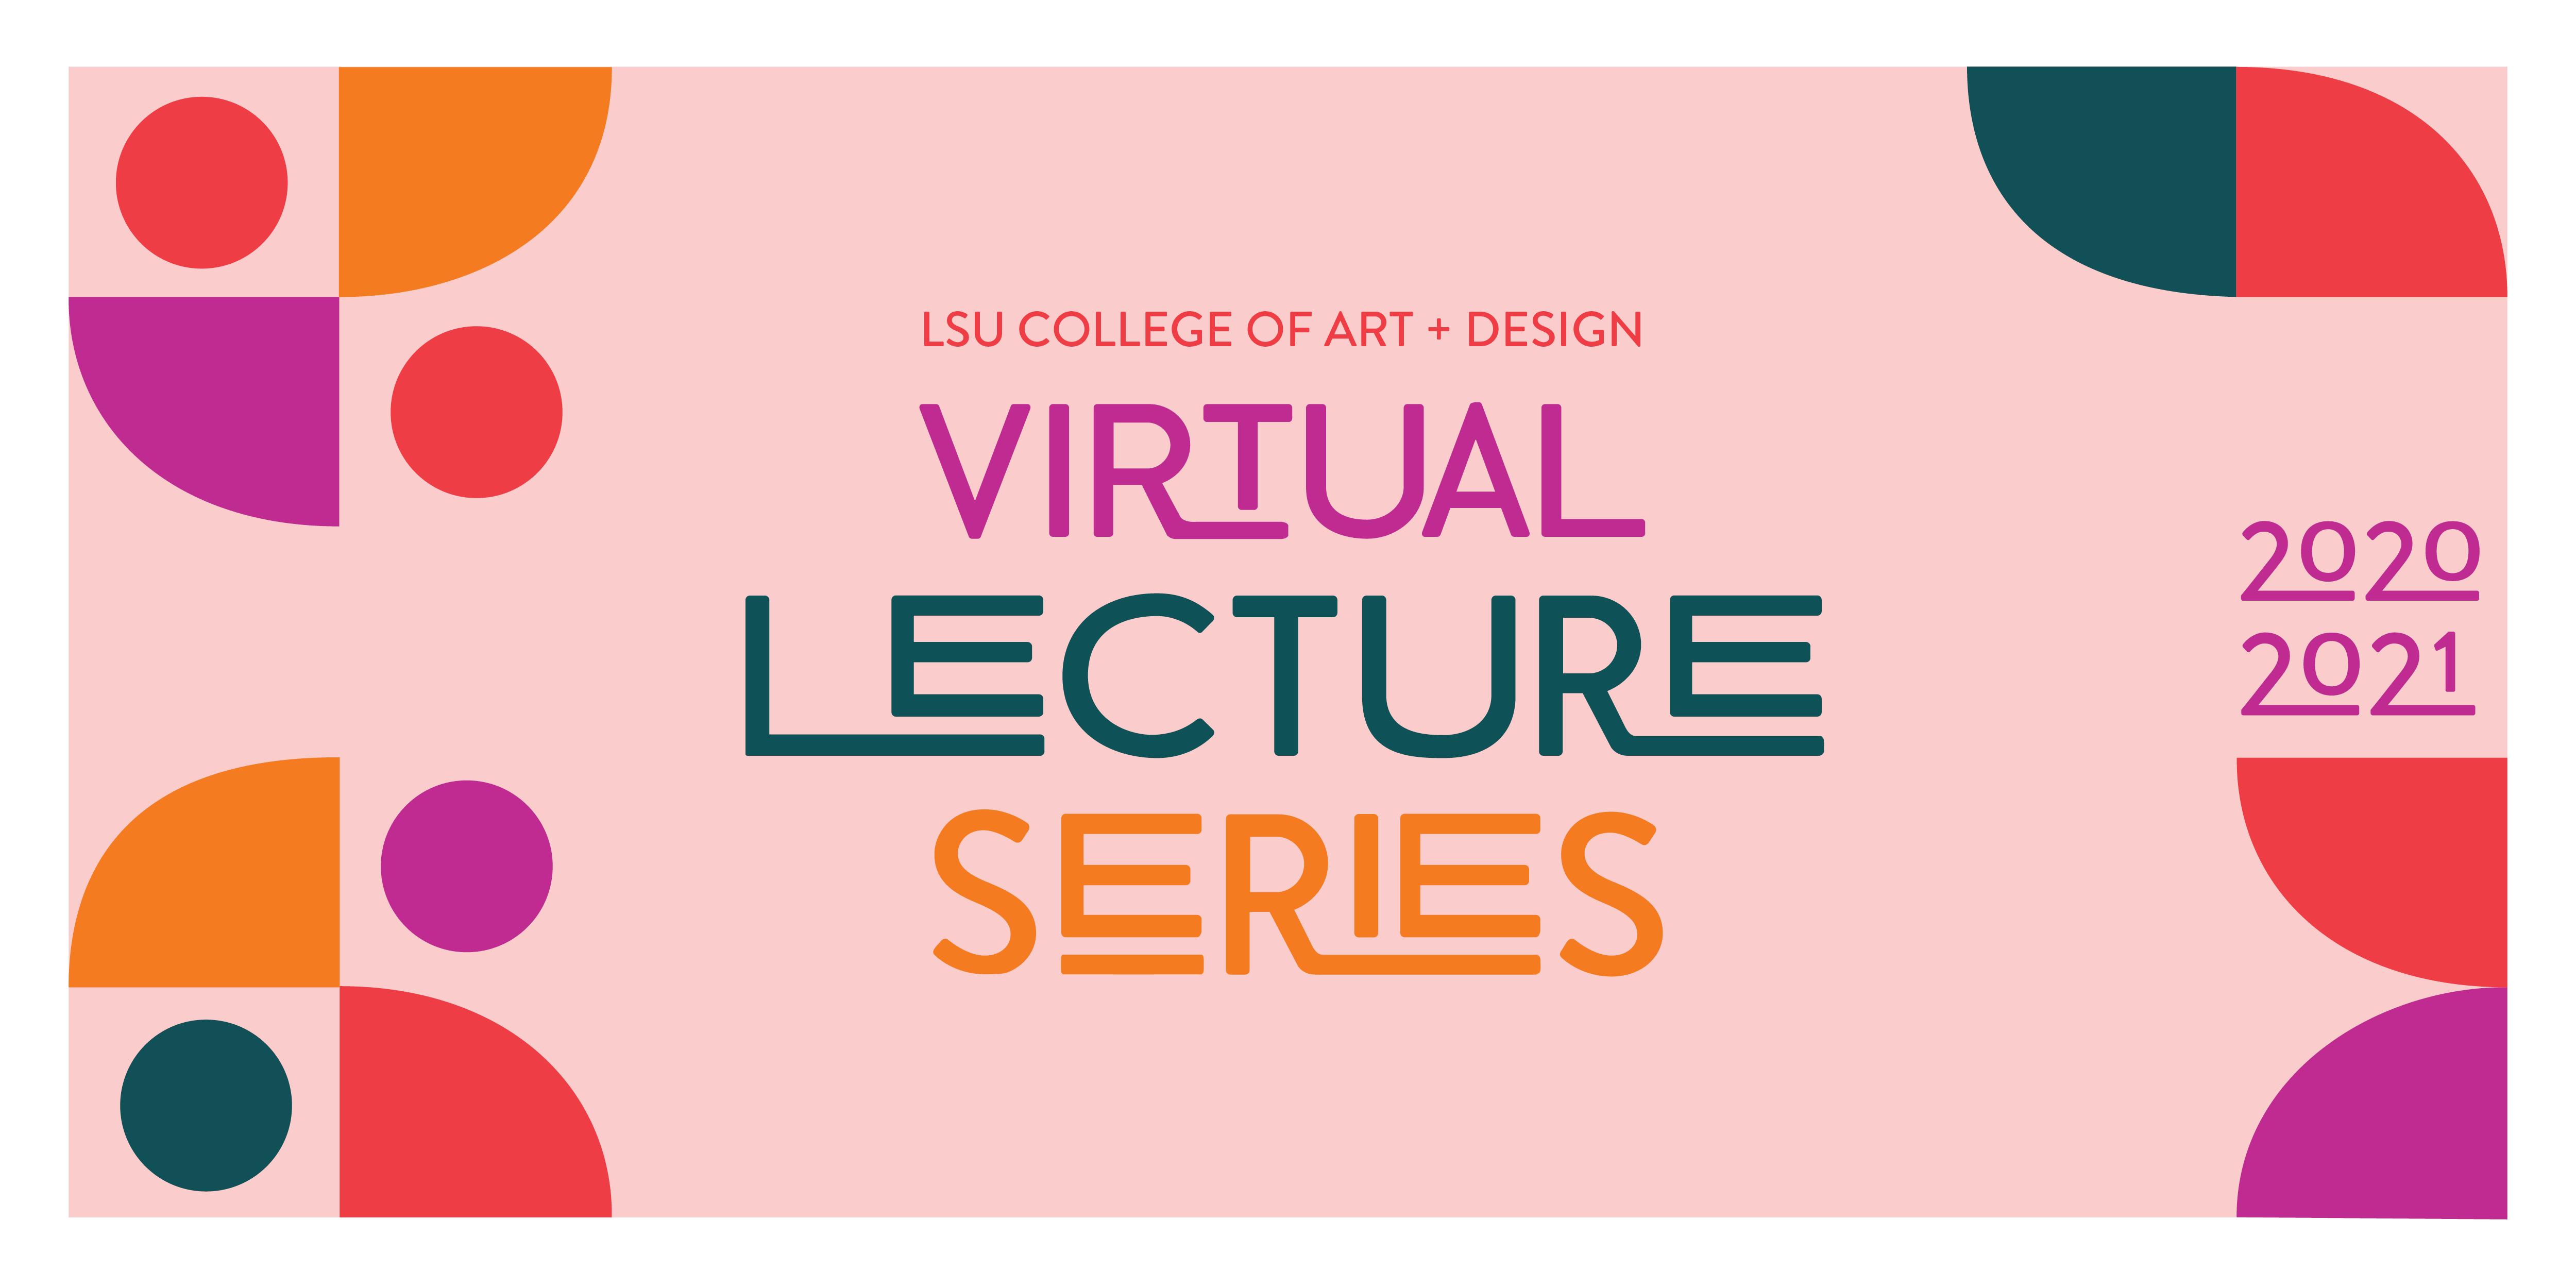 LSU College of Art & Design Virtual Lecture Series 2020-2021. Pink background with colorful geometric shapes.